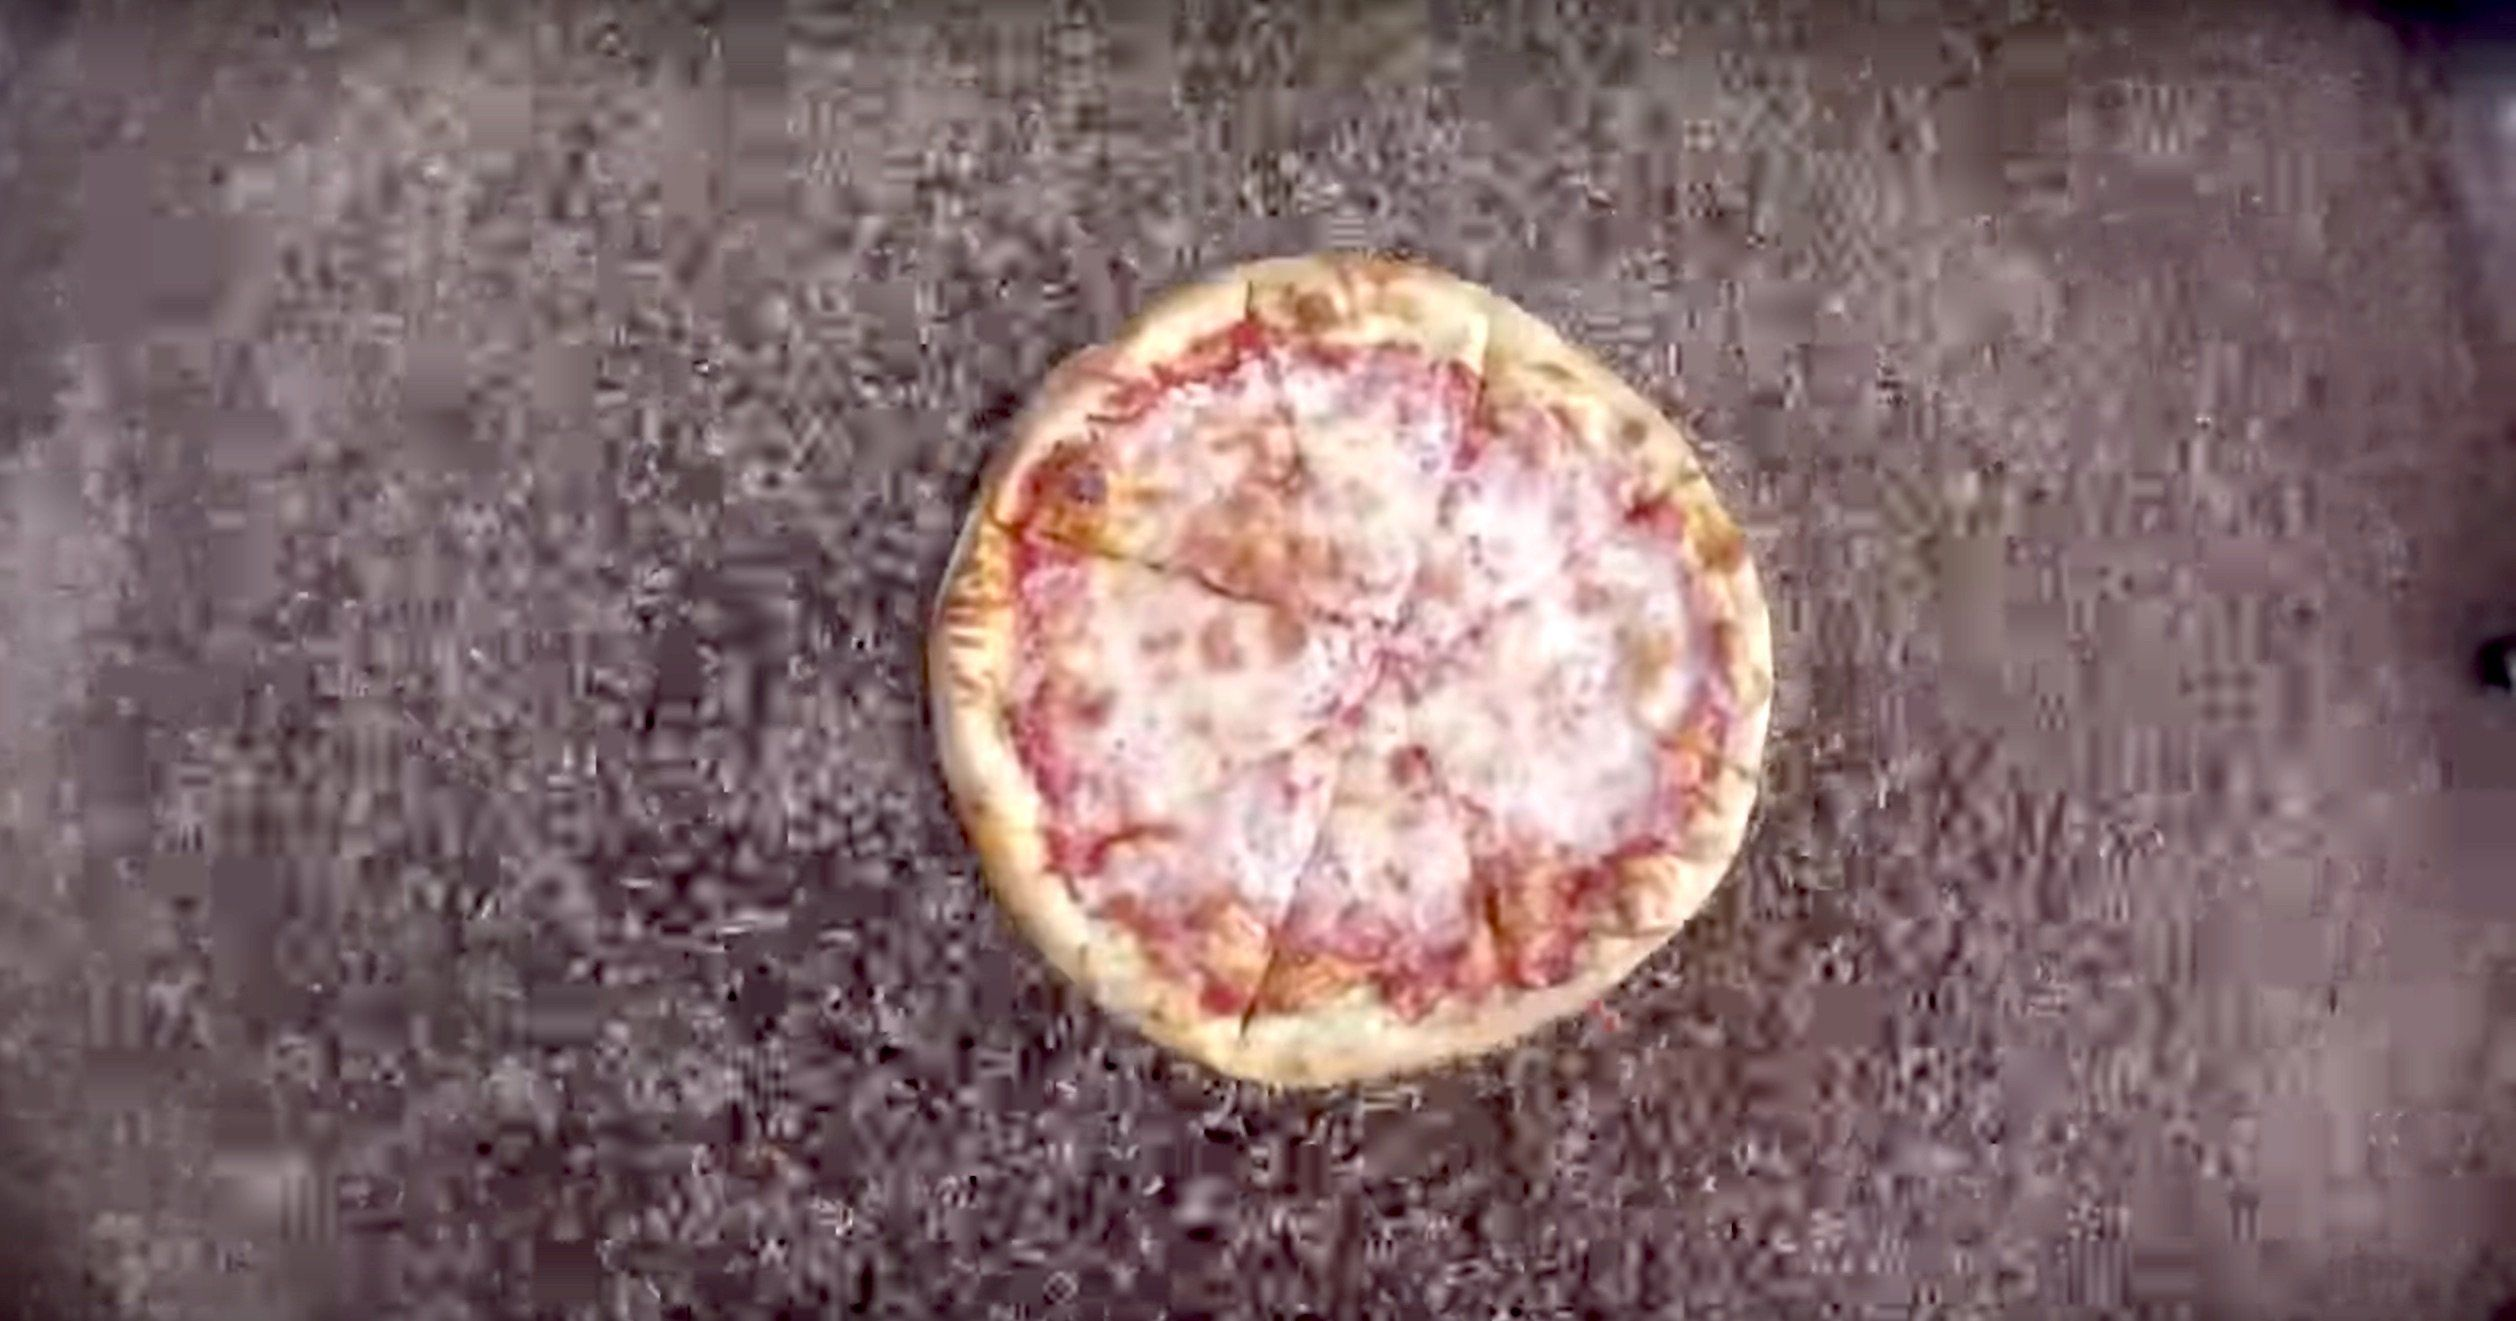 Read: This Is Hands-Down The Most Horrifying Pizza Video You'll Ever See